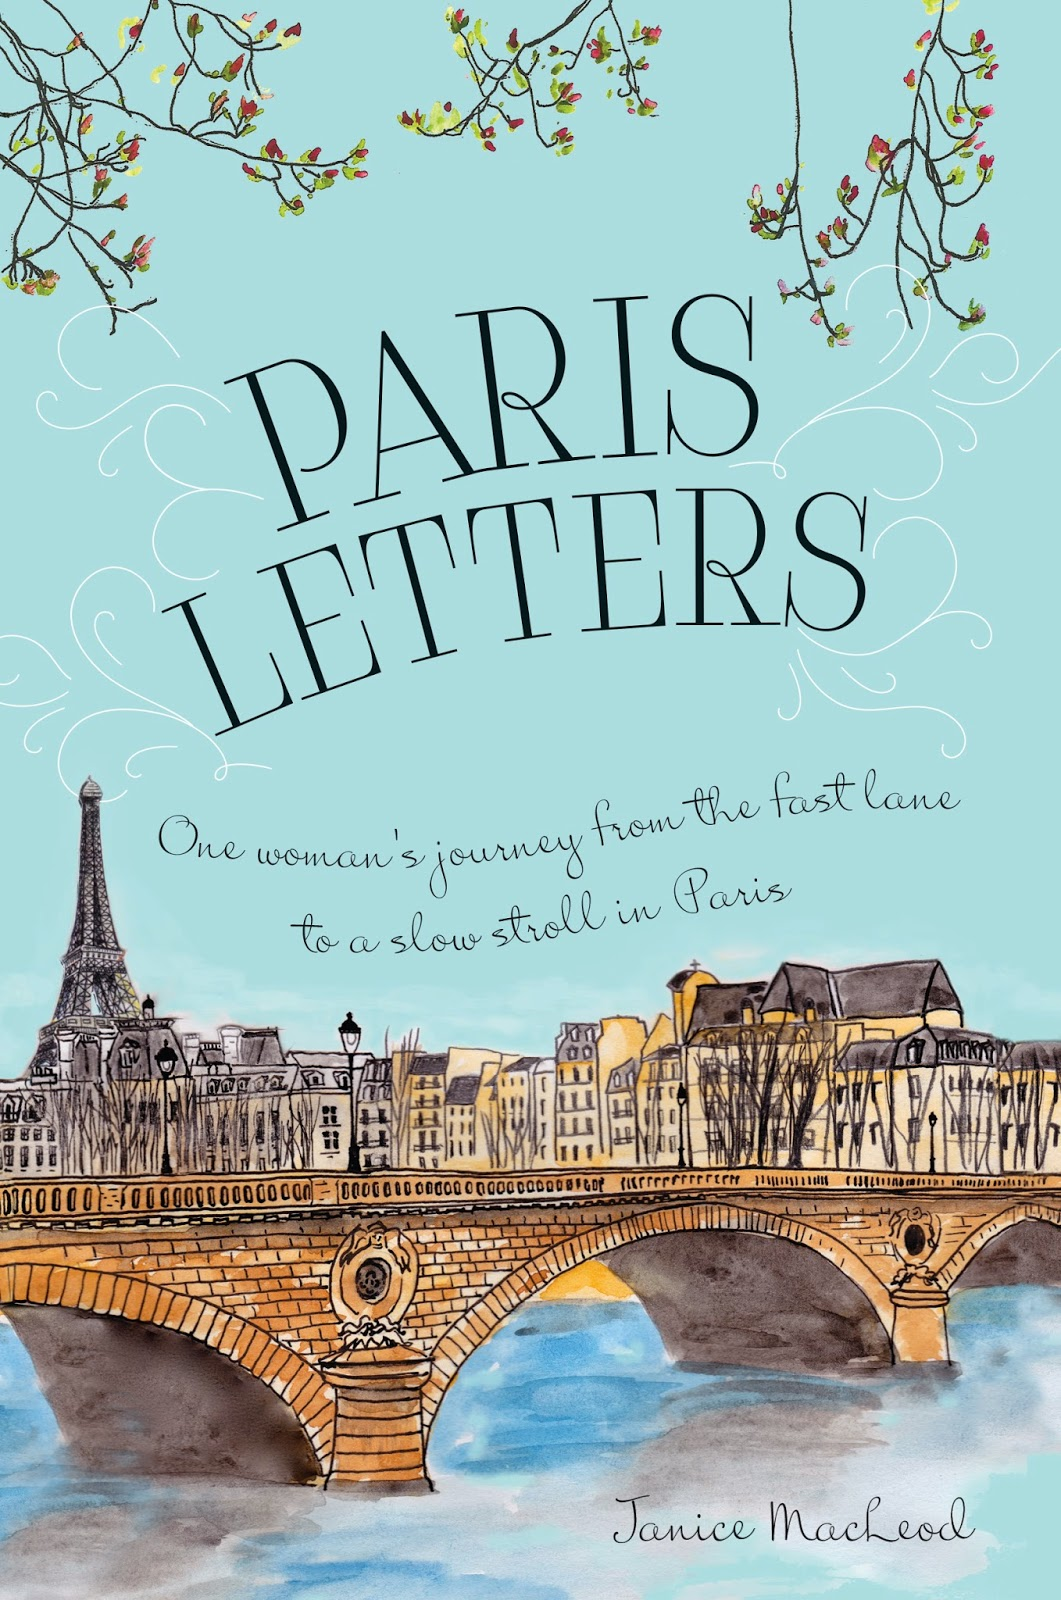 French Village Diaries Paris Letters Janice Macleod book review Art competition